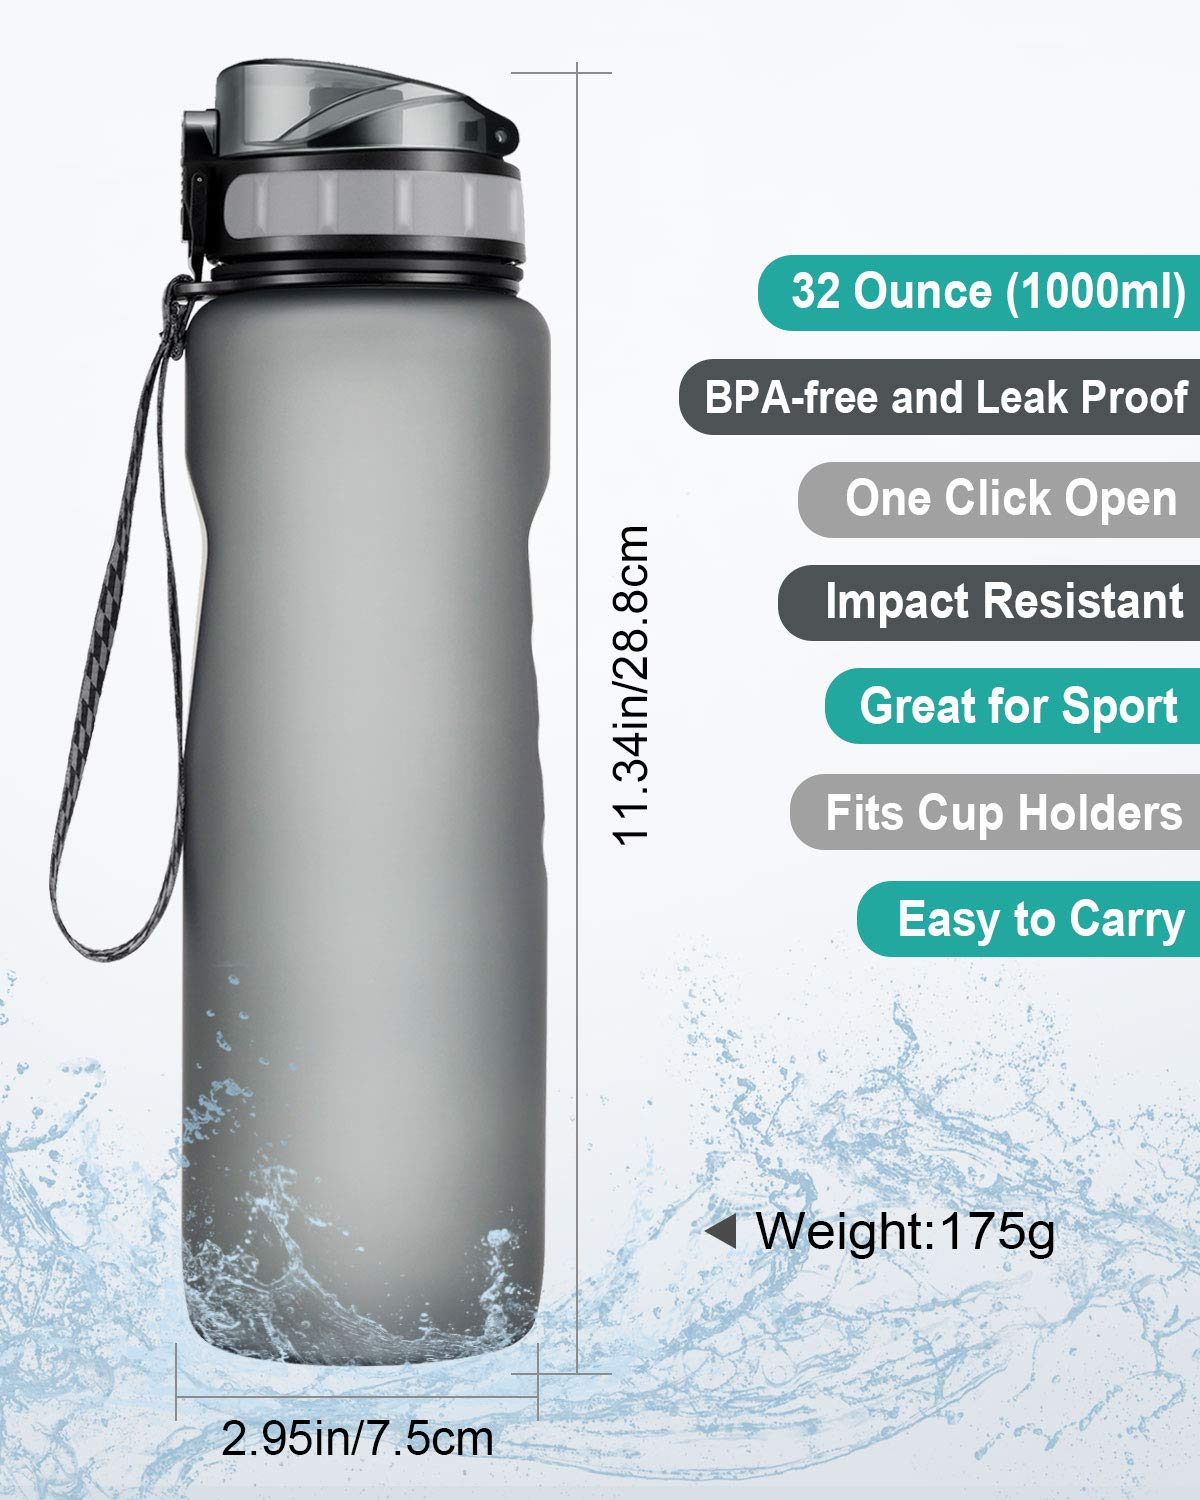 Leakproof and Dustproof Cap for Camping Travel Hiking Yoga Gym and More Outdoor Activities GIARIDE Tritan Water Bottle 32oz BPA-Free Sports Water Bottle Drink Bottle with Locking Flip-Flop Lid